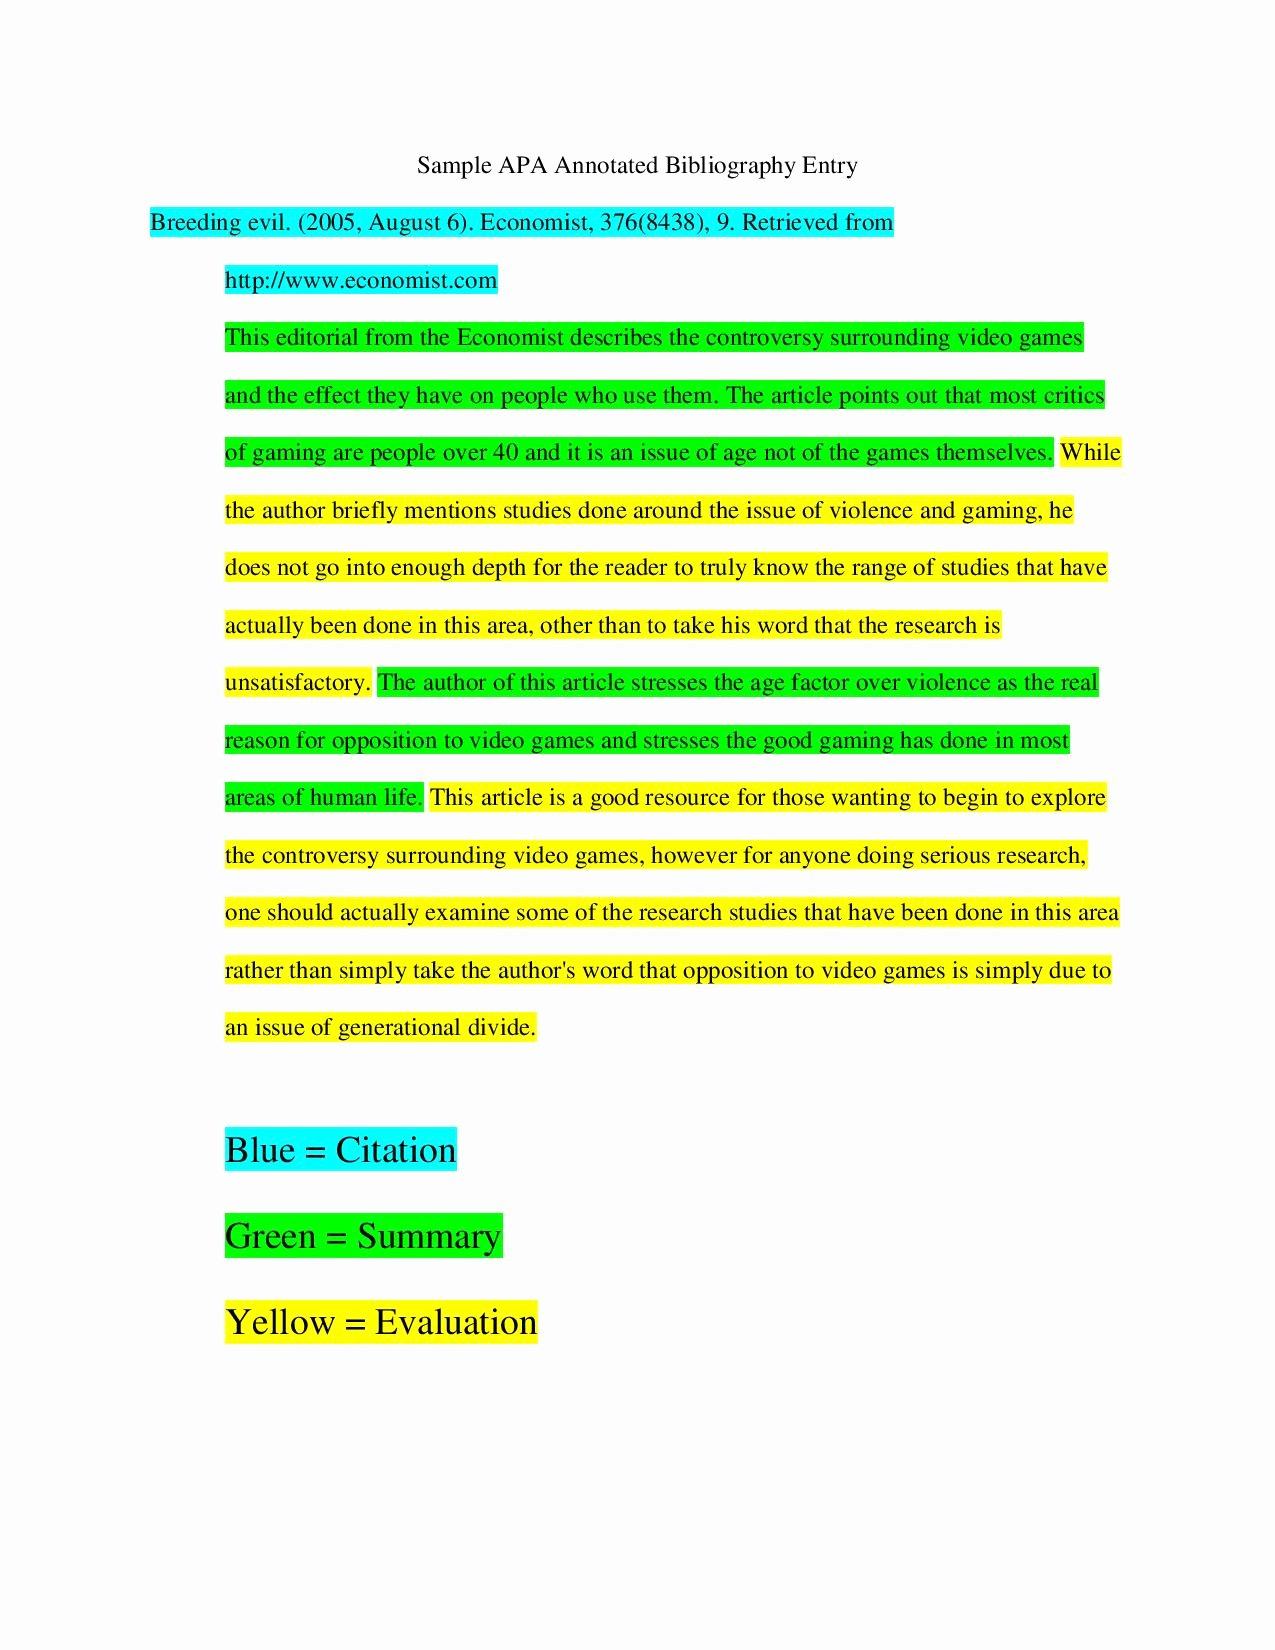 Sample Apa Annotated Bibliography Lovely Does An Annotated Bibliography Need A Conclusion